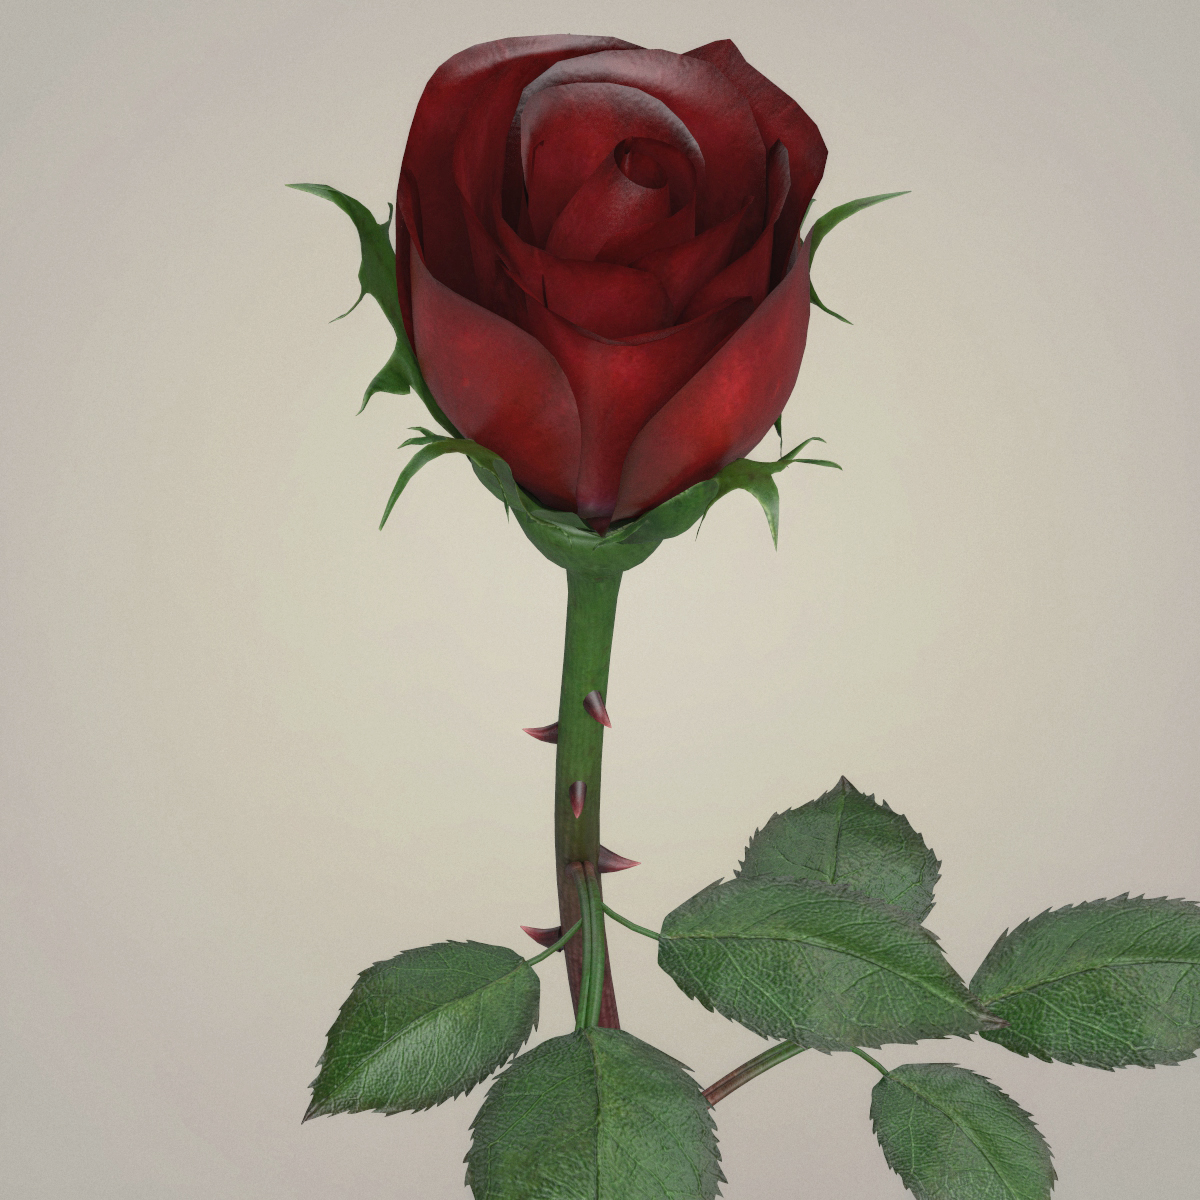 rose flower collection 3d model max fbx c4d ma mb obj 252762